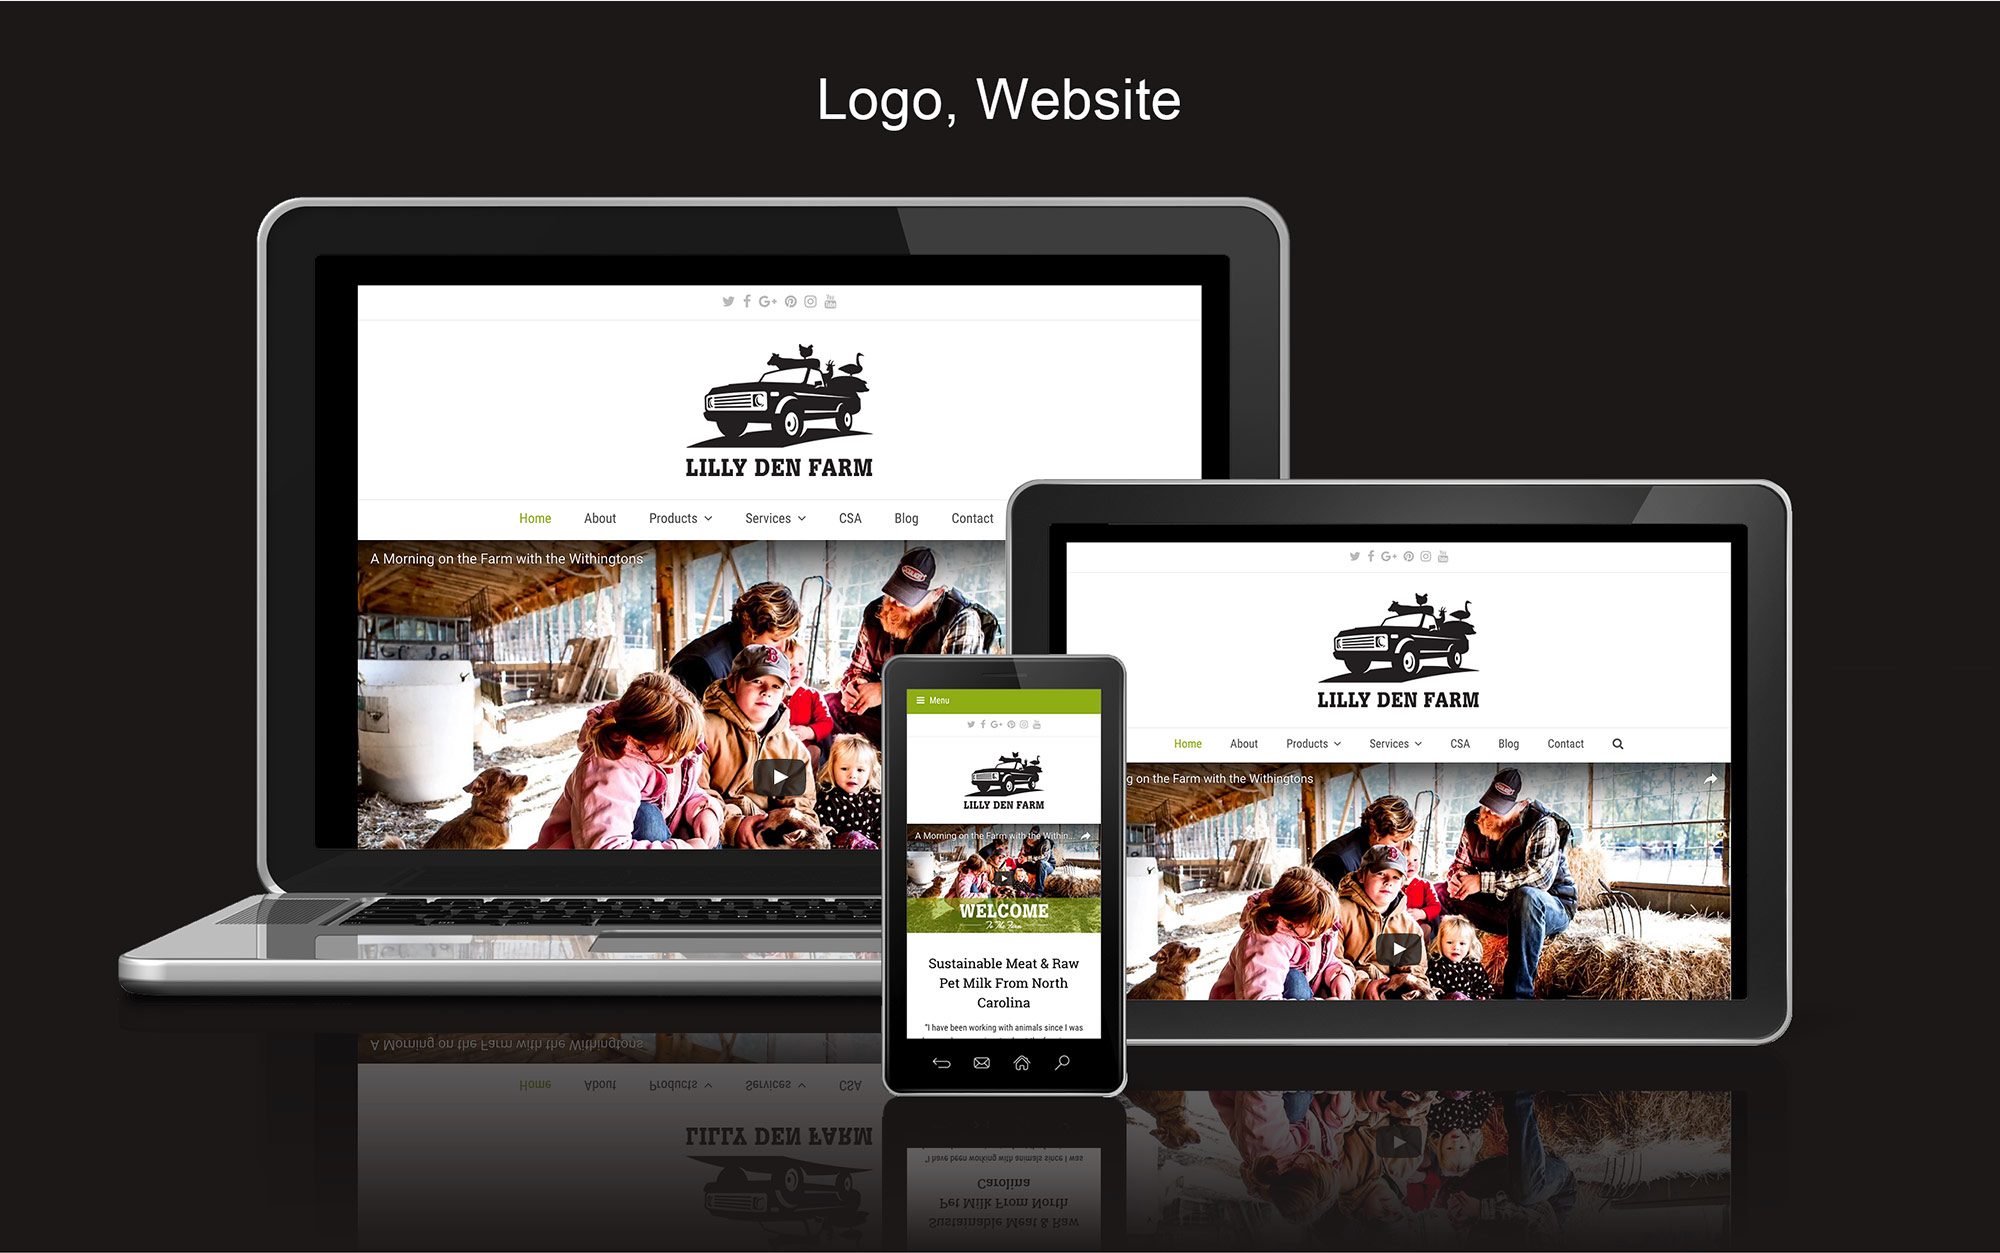 Lilly Den Farm Website - Desktop, Tablet, and Smartphone devices with website on screens